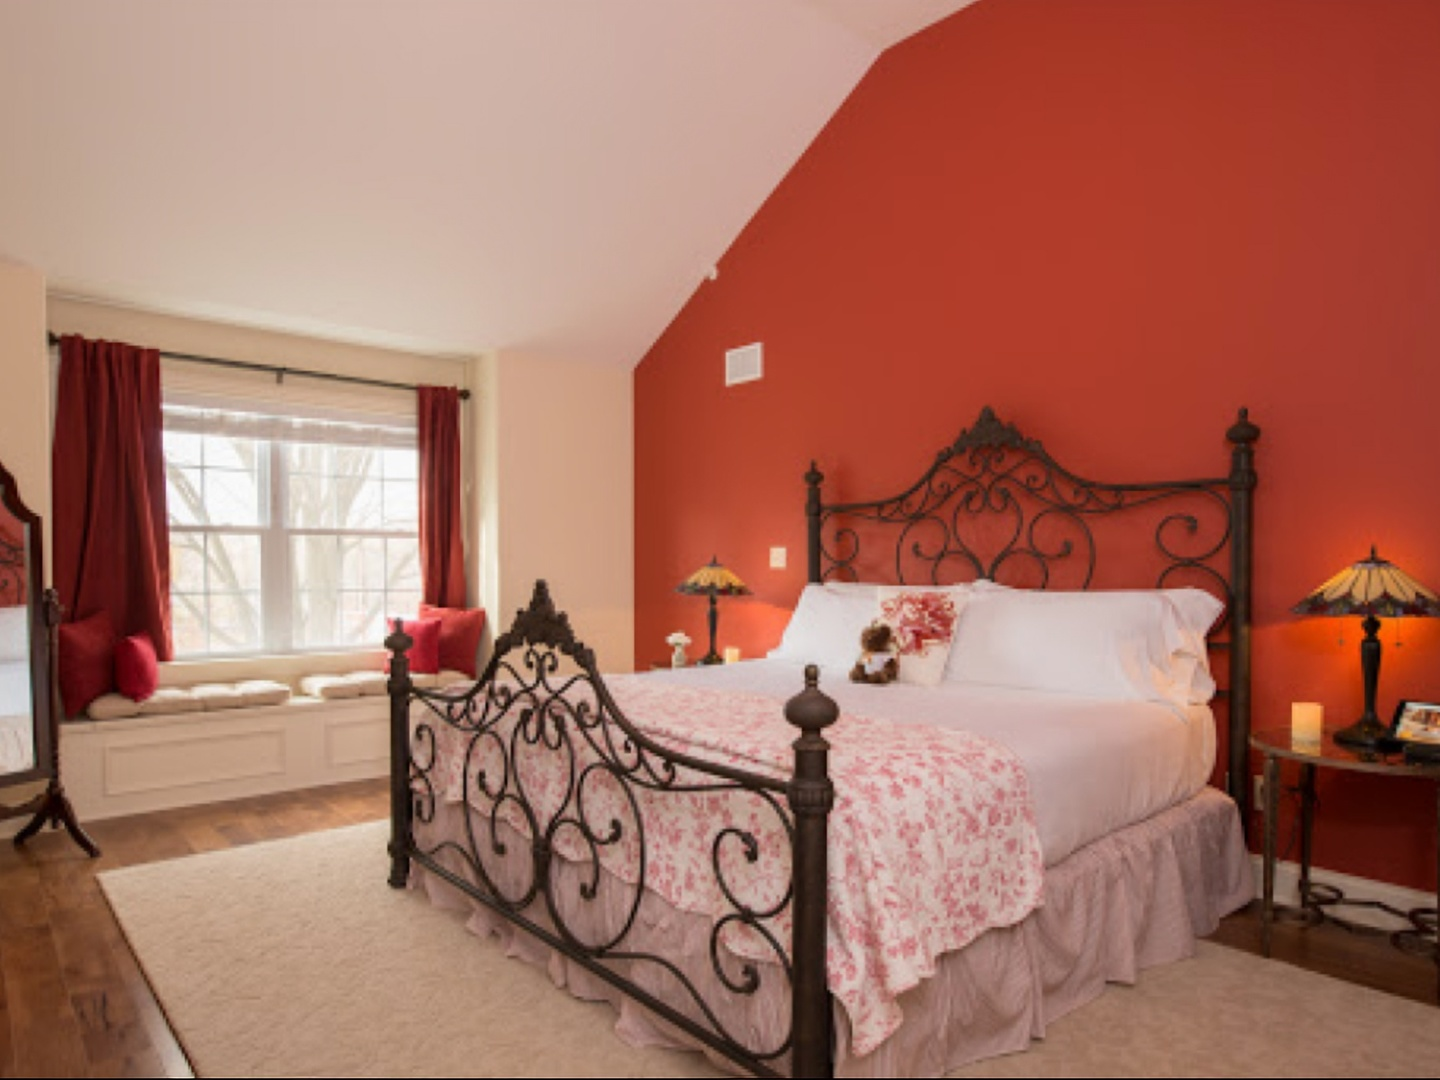 A bedroom with a large bed in a room at Caldwell House Bed & Breakfast.